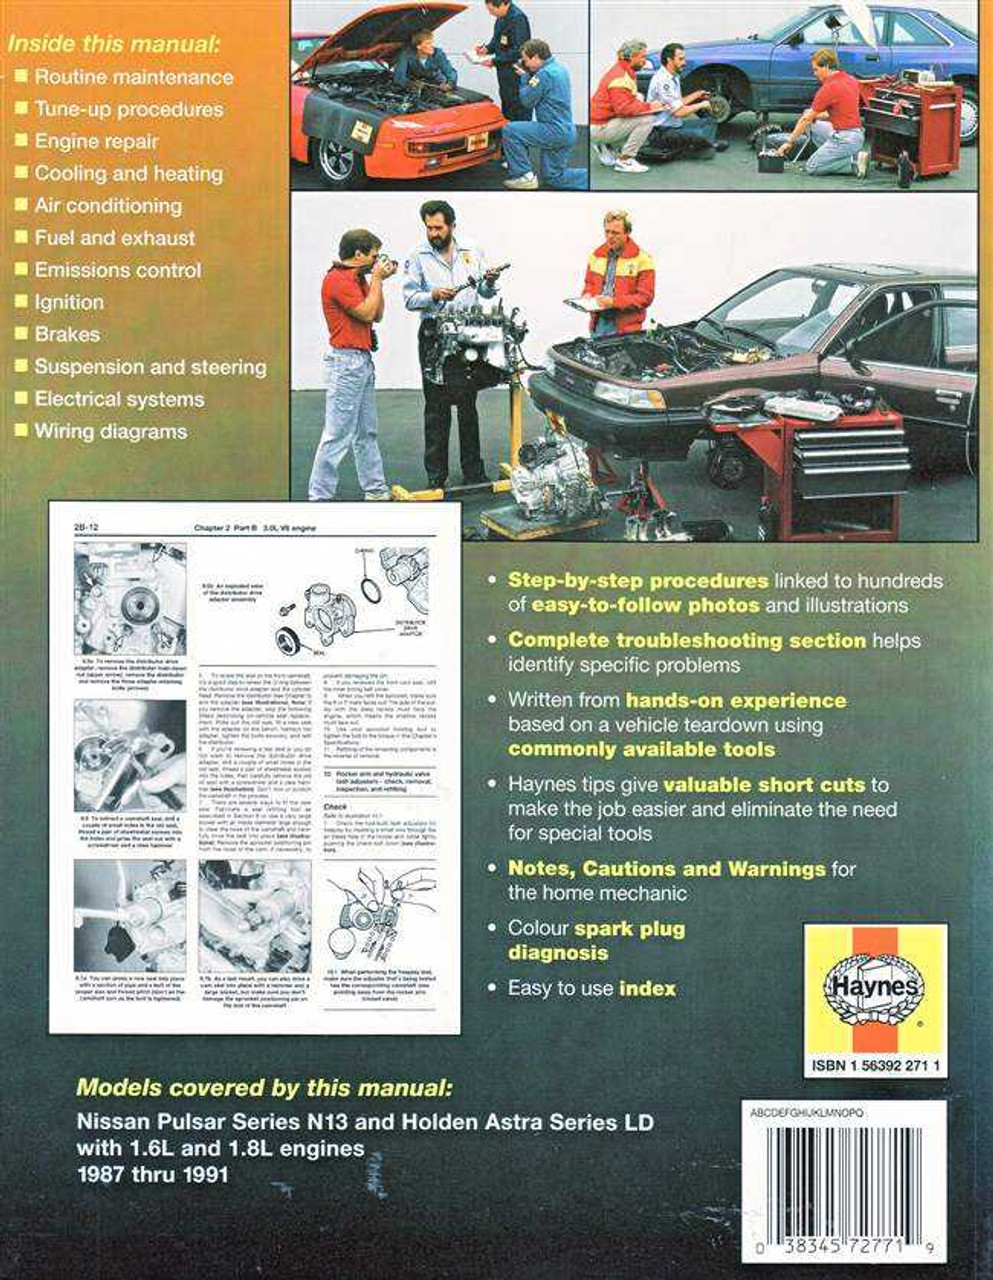 https://www automotobookshop com au/nissan-pulsar-n13-and-holden-astra-ld-1987-1991-haynes-workshop-manual/